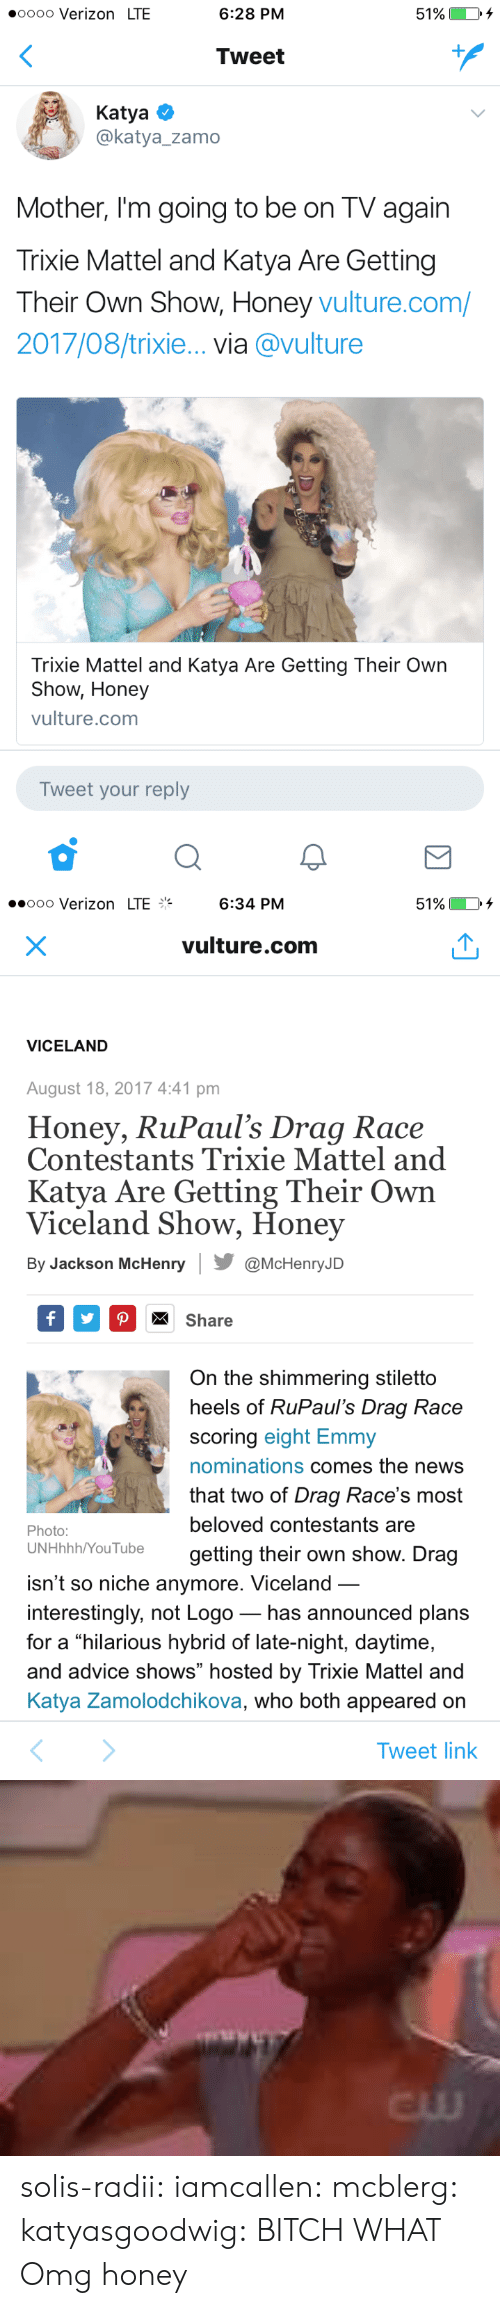 """Vulture: oooo Verizon LTE  6:28 PM  51%)  Tweet  Katya  @katya_zamo  Mother, I'm going to be on TV again  Trixie Mattel and Katya Are Gettingg  Their Own Show, Honey vulture.com/  2017/08/trixie... via @vulture  Trixie Mattel and Katya Are Getting Their Own  Show, Honey  vulture.com  Tweet your reply   ..ooo Verizon LTE%  6:34 PM  51%  vulture.com  VICELAND  August 18, 2017 4:41 pm  Honey, RuPaul's Drag Race  Contestants Trixie Mattel and  Katya Are Getting Their Own  Viceland Show, Honey  By Jackson McHenry@McHenryJD  Share  On the shimmering stiletto  heels of RuPaul's Draq Race  scoring eight Emmy  nominations comes the news  that two of Drag Race's most  beloved contestants are  getting their own show. Drag  Photo:  UNHhhh/YouTube  isn't so niche anymore. Viceland  interestingly, not Logo_ has announced plans  for a hilarious hybrid of late-night, daytime,  and advice shows"""" hosted by Trixie Mattel and  Katya Zamolodchikova, who both appeared on  Tweet link   cw solis-radii:  iamcallen:   mcblerg:  katyasgoodwig: BITCH WHAT  Omg  honey"""